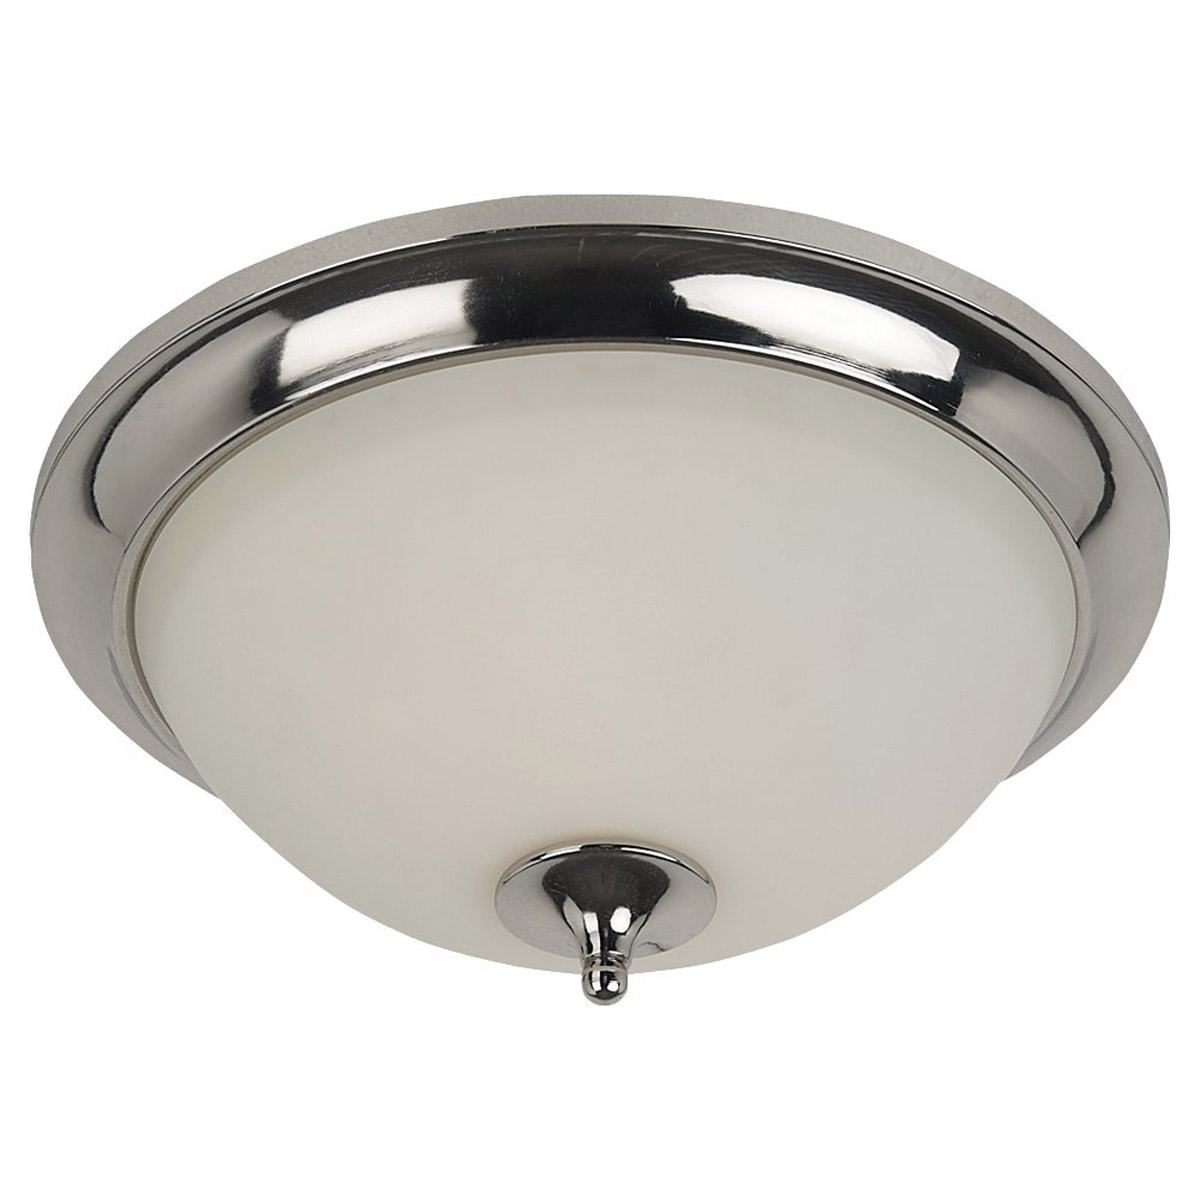 Sea Gull Lighting Solana 2 Light Flush Mount in Polished Nickel 75971-841